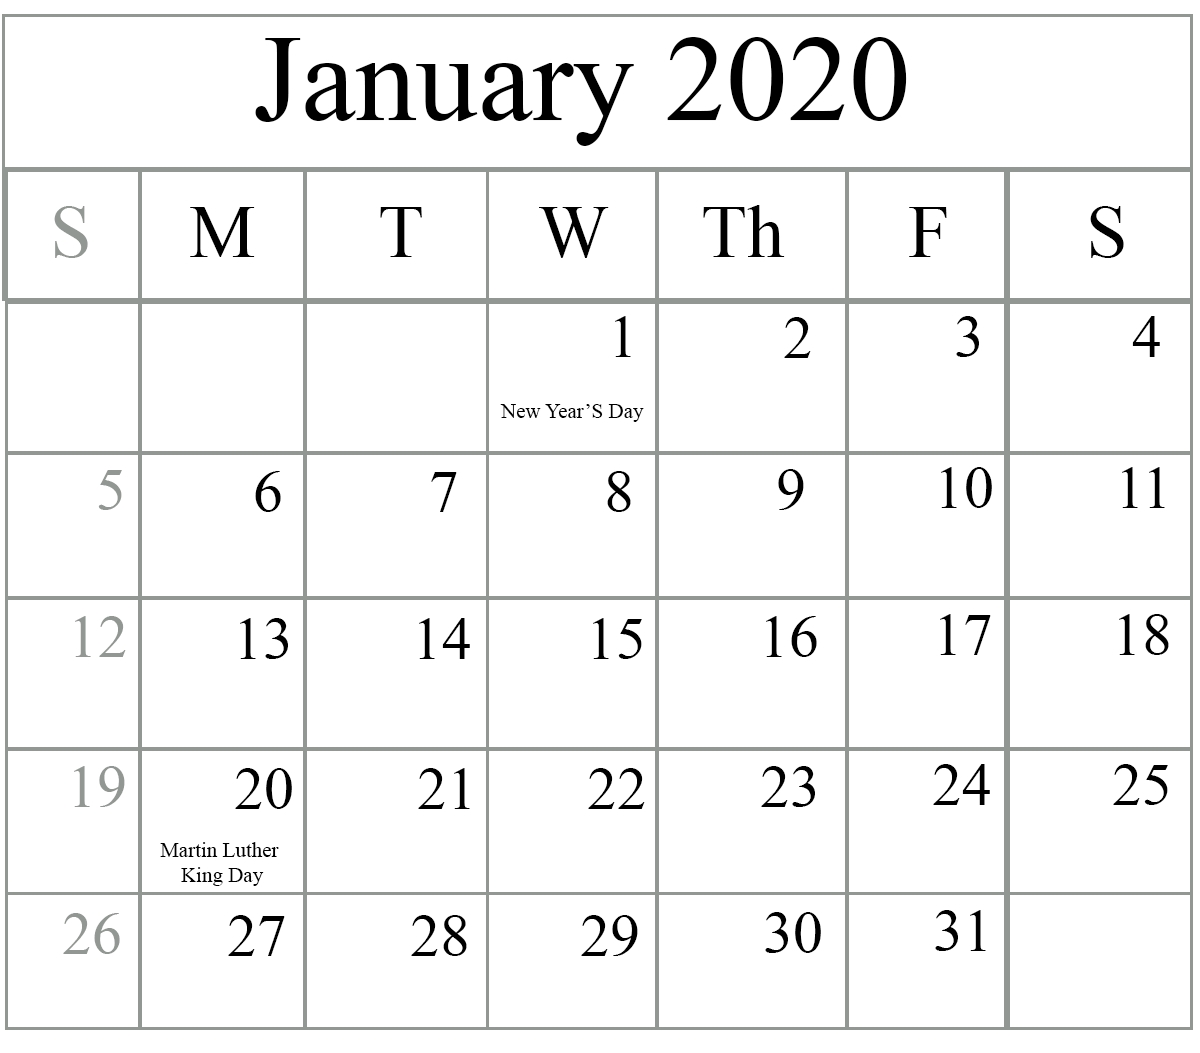 Free January 2020 Printable Calendar In Pdf, Excel & Word-January 2020 Calendar Page